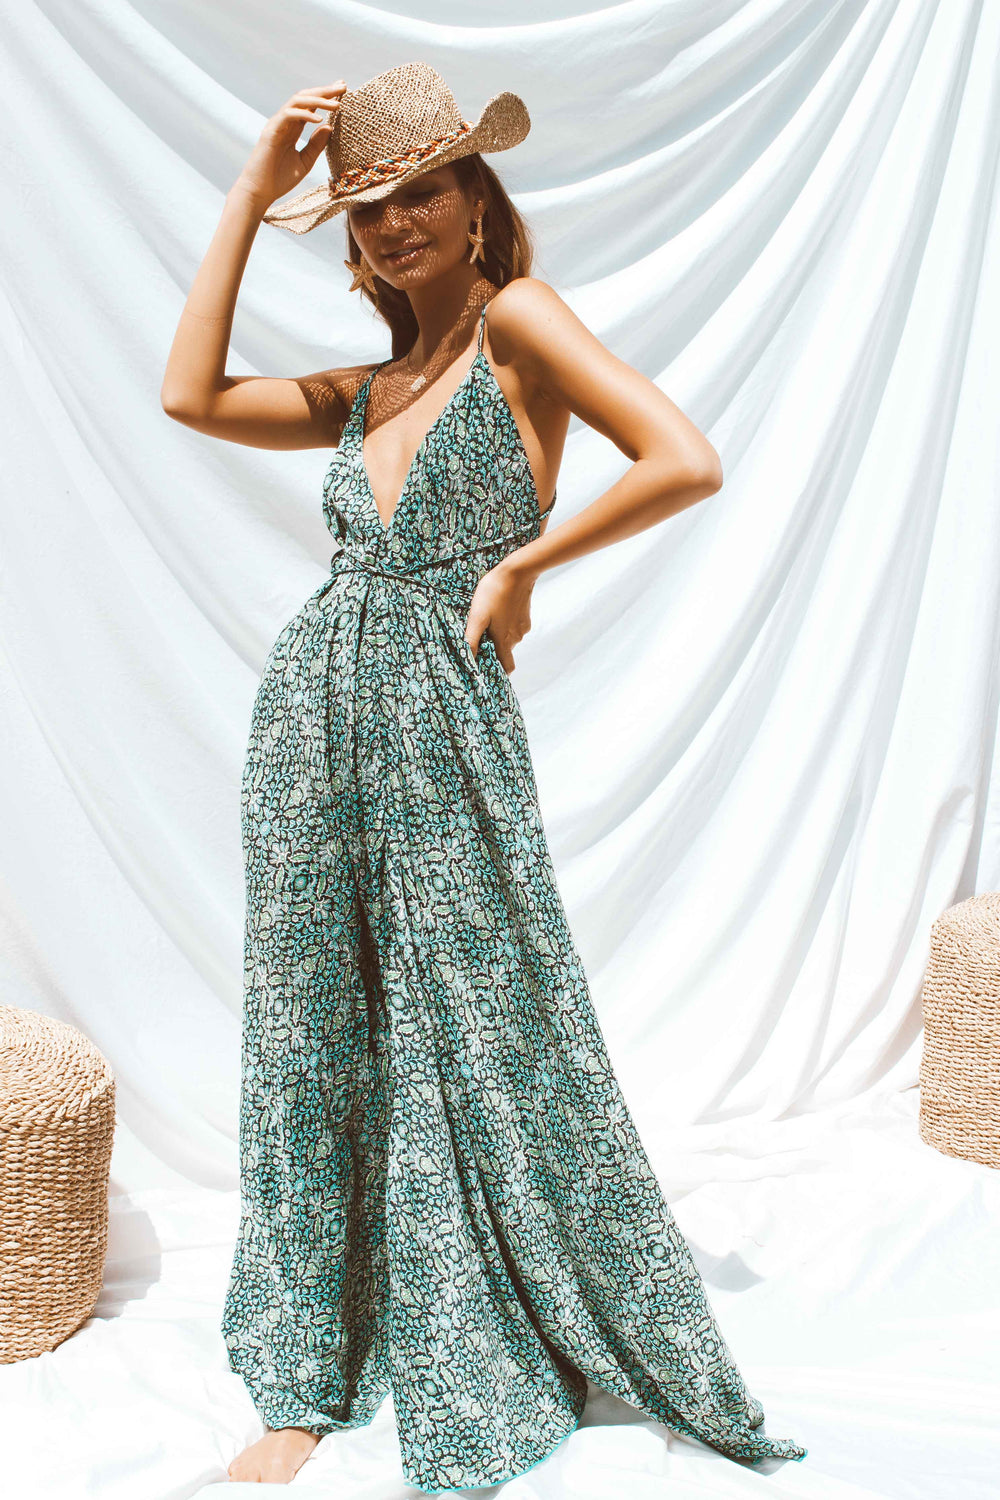 THELMA DRESS IN GREEN - Chic Le Frique